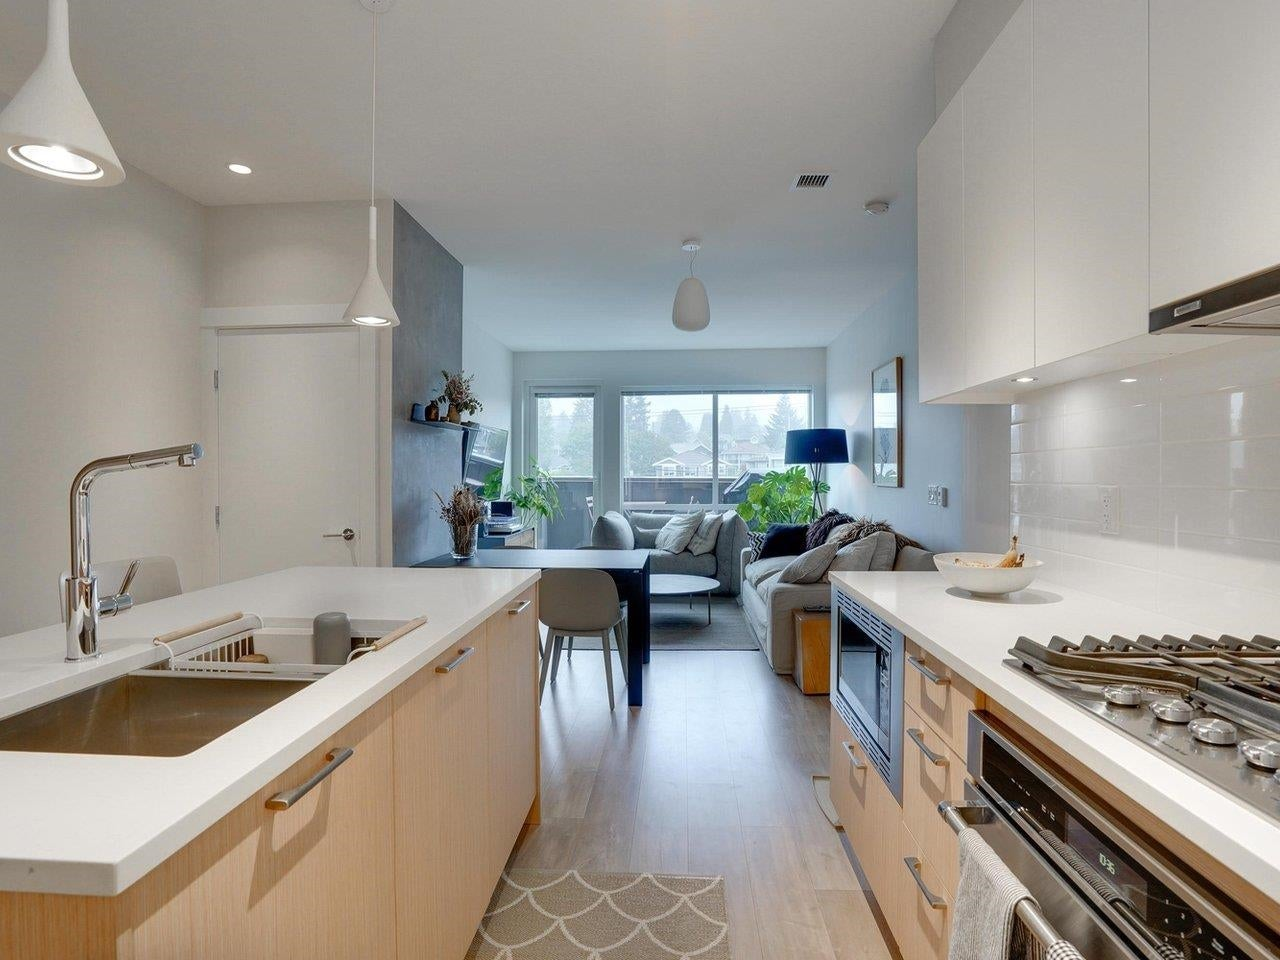 409 615 E 3RD STREET - Lower Lonsdale Apartment/Condo for sale, 2 Bedrooms (R2621616) - #3